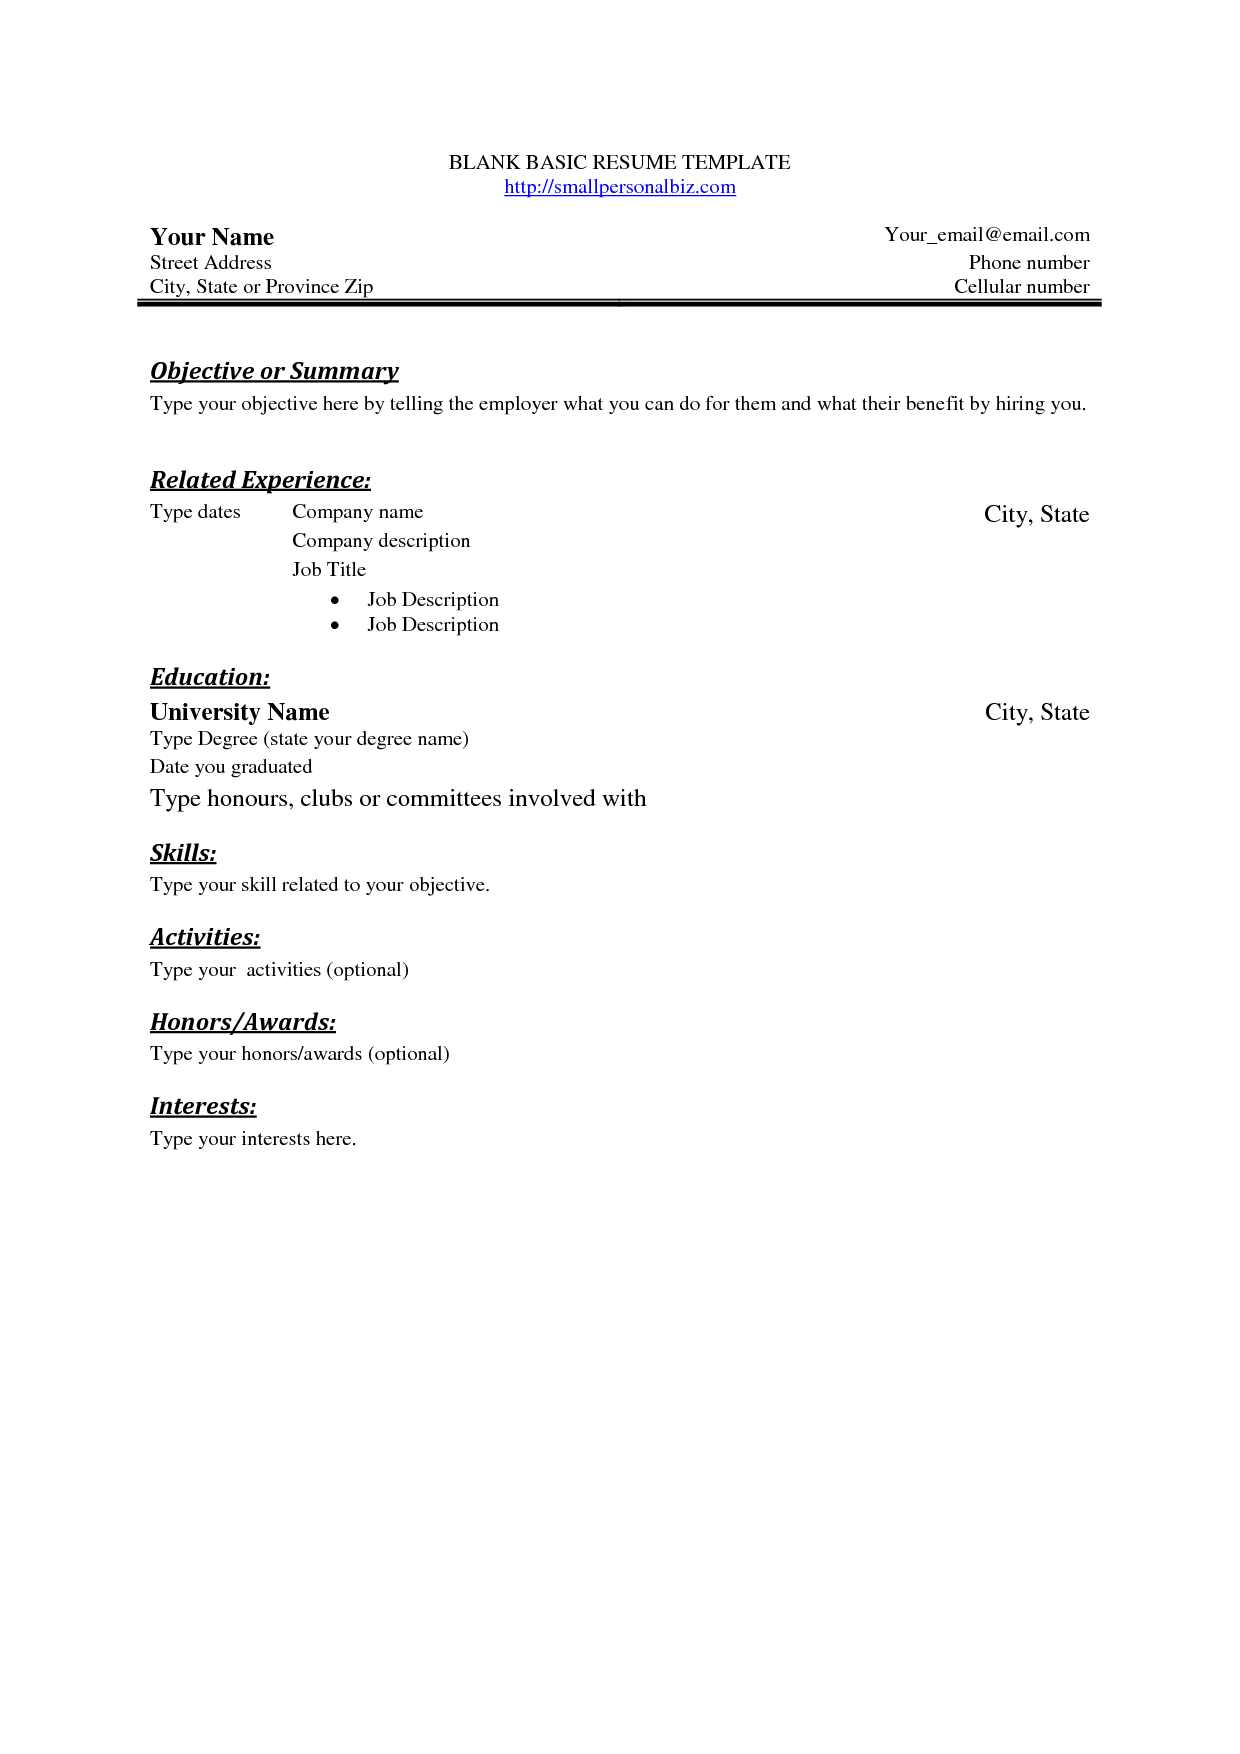 Free Basic Blank Resume Template | Free Basic Sample Resume | Beauty - Free Printable Professional Resume Templates